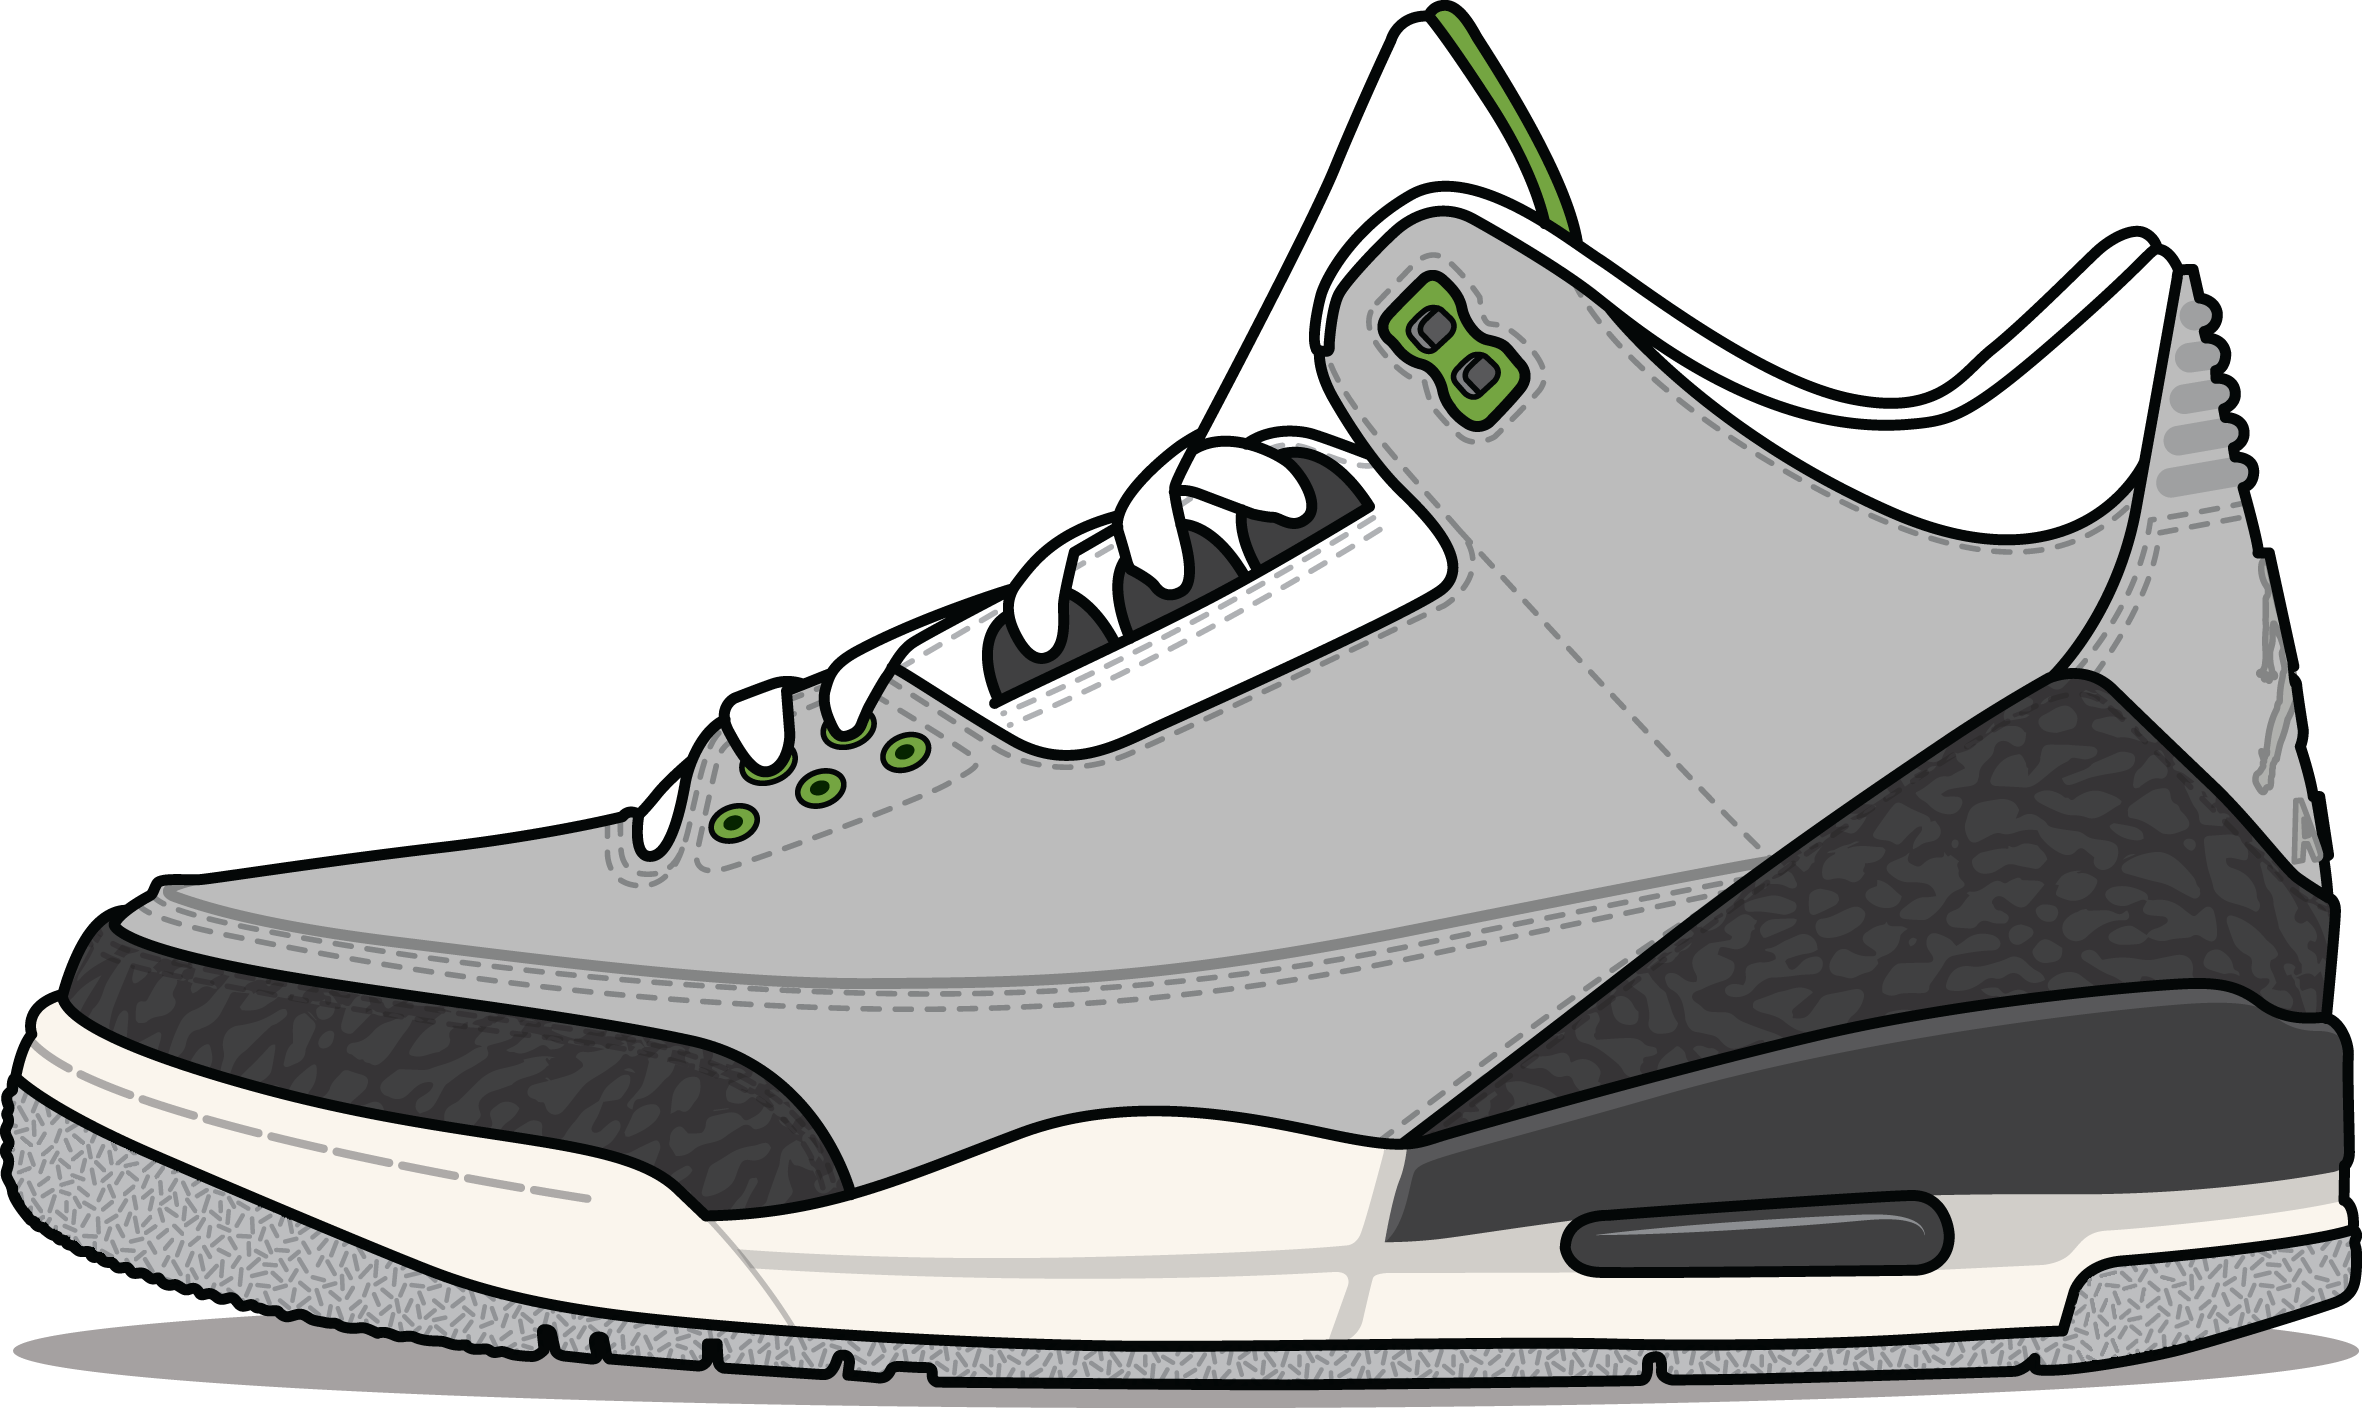 Nike Air Jordan III 'Chlorophyll' Grey and Green